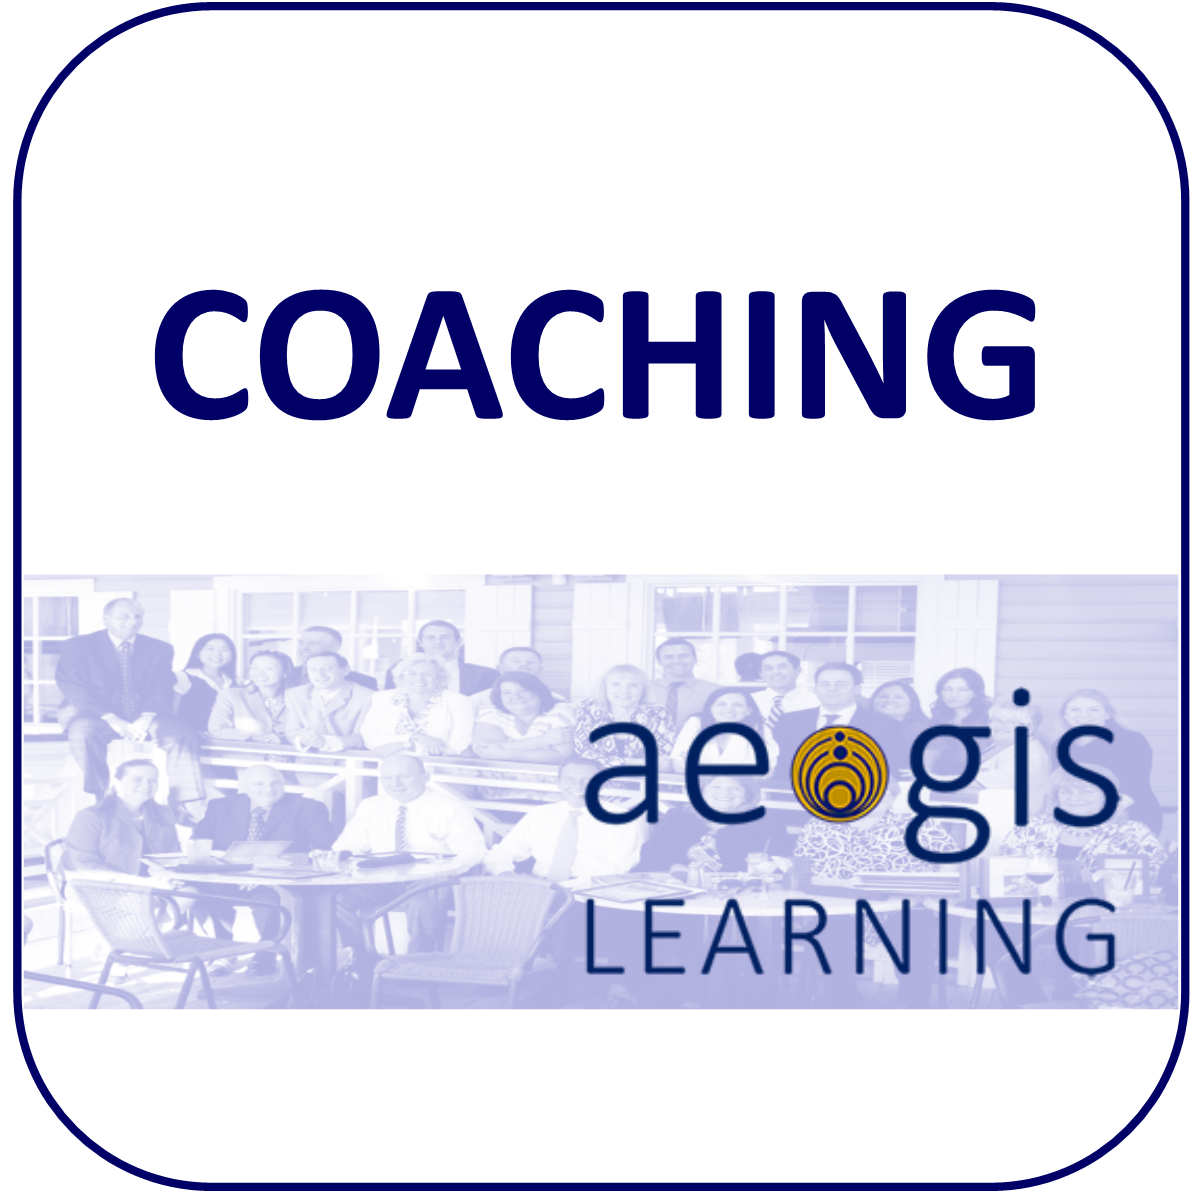 Coaching and Feedback from Aegis Learning